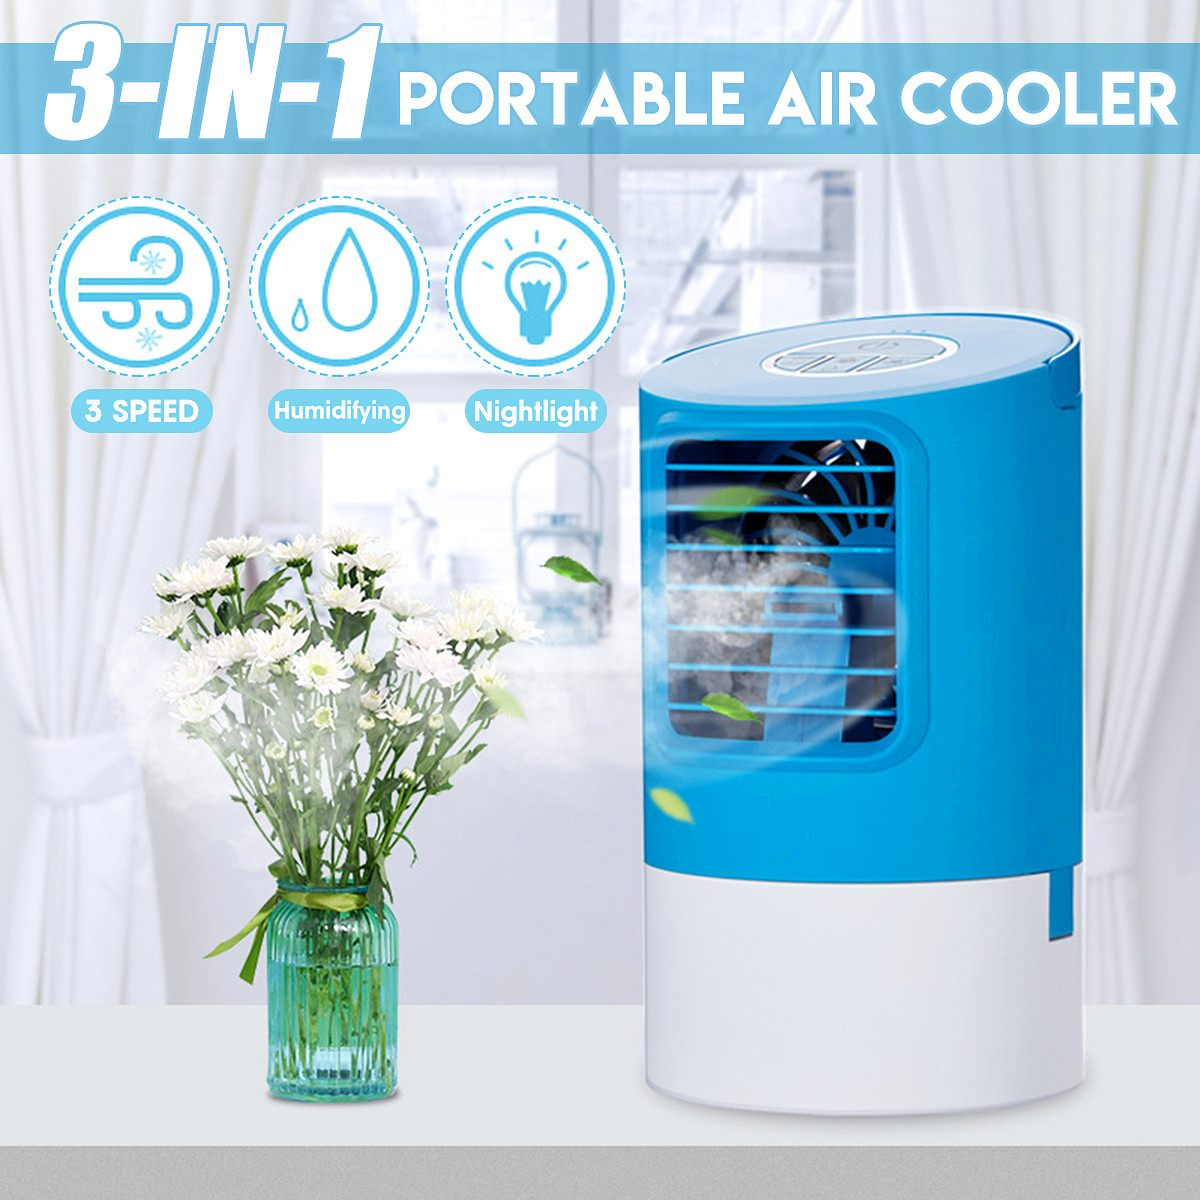 18W Mini Portable Air Conditioner Humidifier Cooler Desktops Household Air Cooling Cooler Fan LED Night Light for Office Home18W Mini Portable Air Conditioner Humidifier Cooler Desktops Household Air Cooling Cooler Fan LED Night Light for Office Home